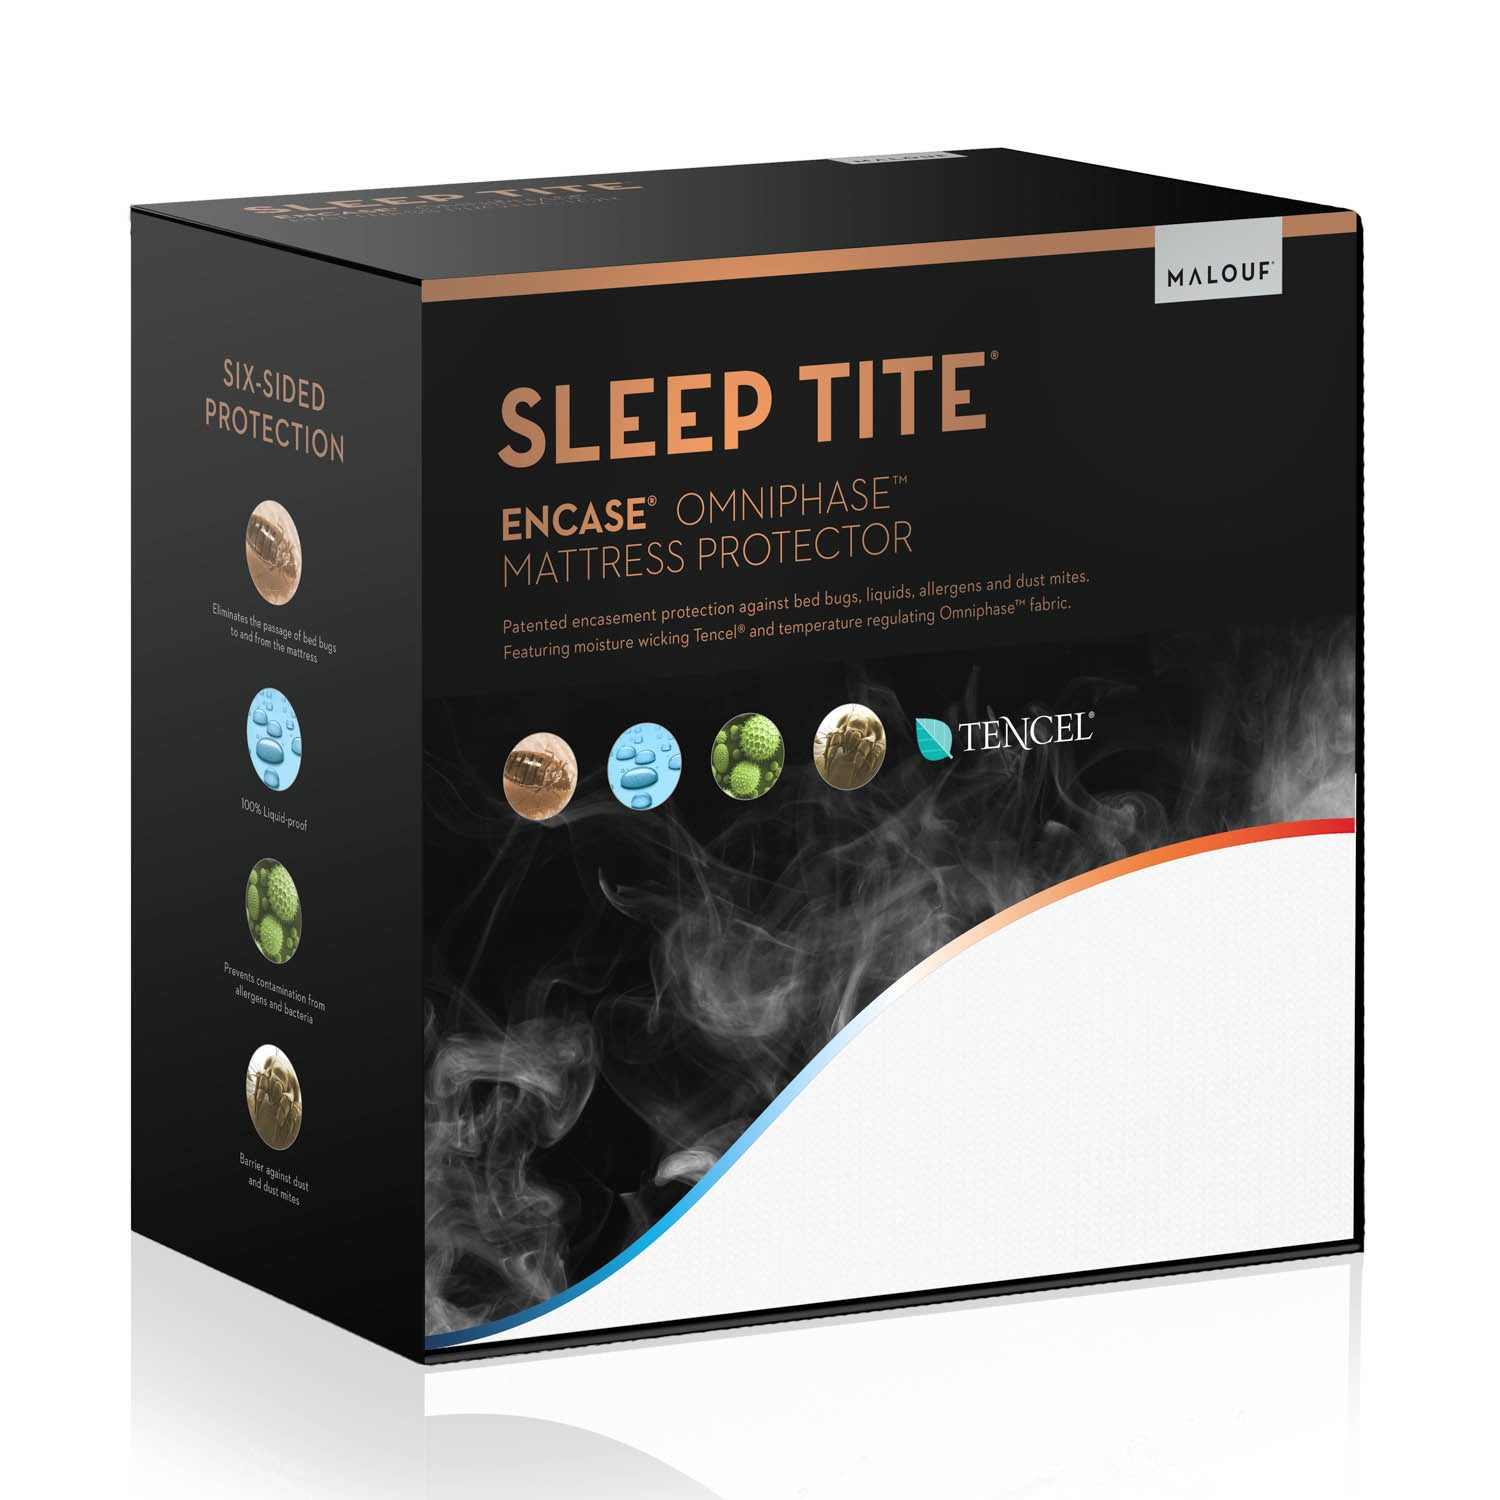 Malouf Sleep Tite Encase Omniphase Cooling Mattress Protector (Full XL), White, Size Full XL (Cotton)